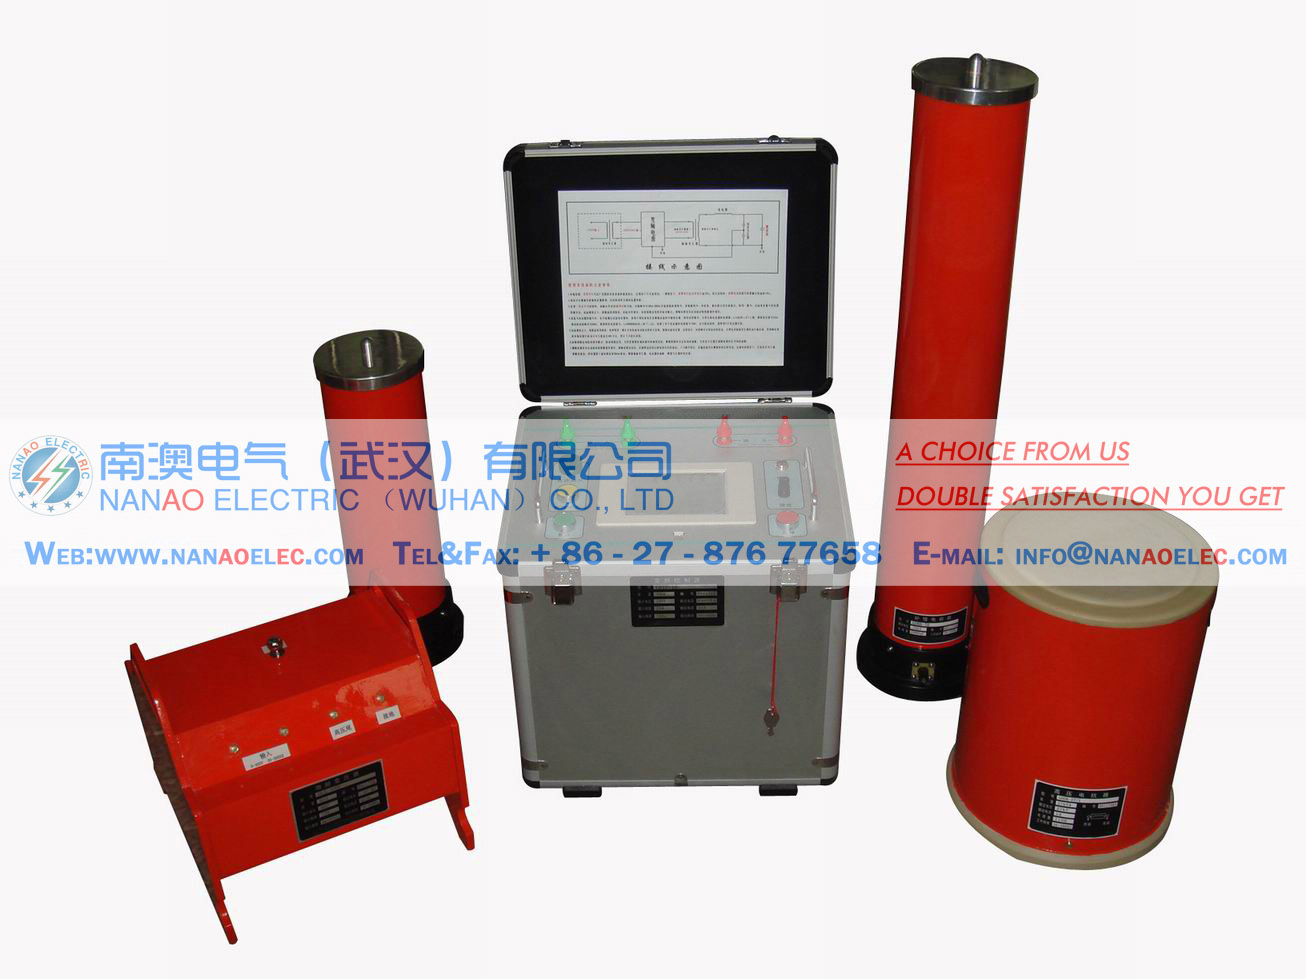 NAGXZ automatic power frequency resonance high voltage complete pressure testing device